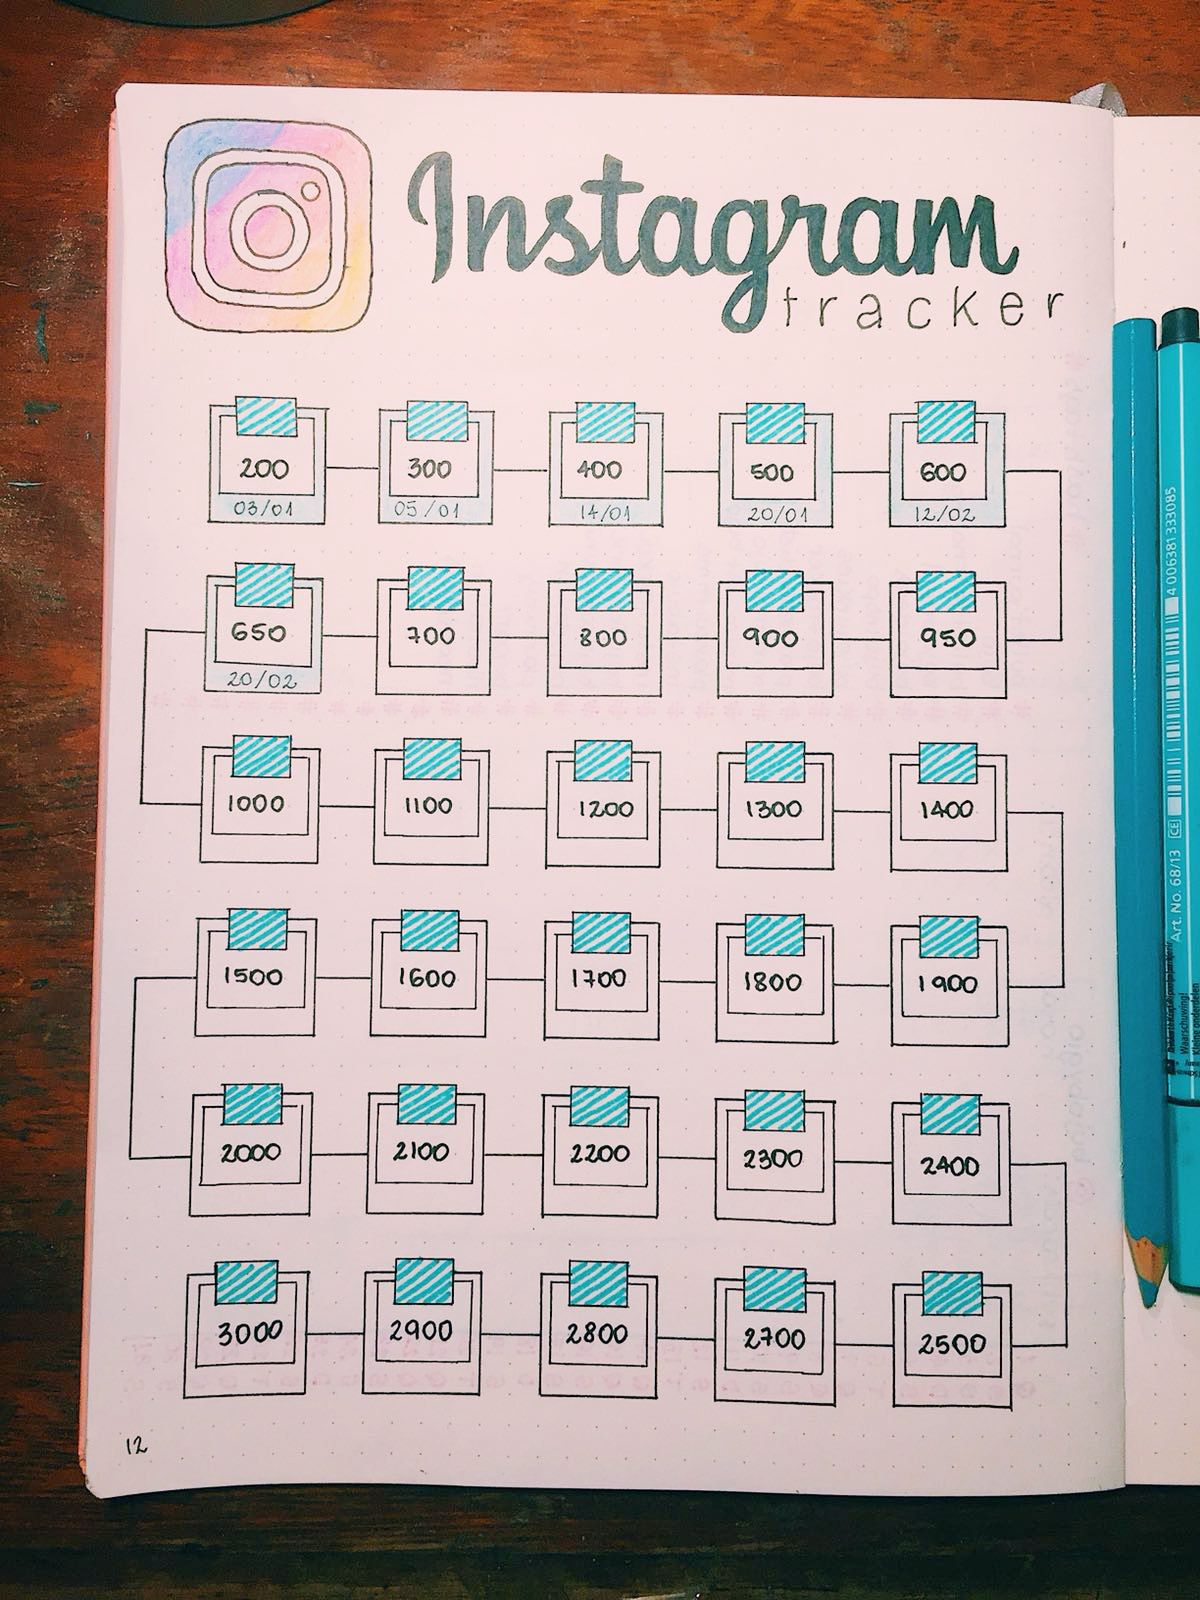 instagram tracker • instagram followers tracker set up